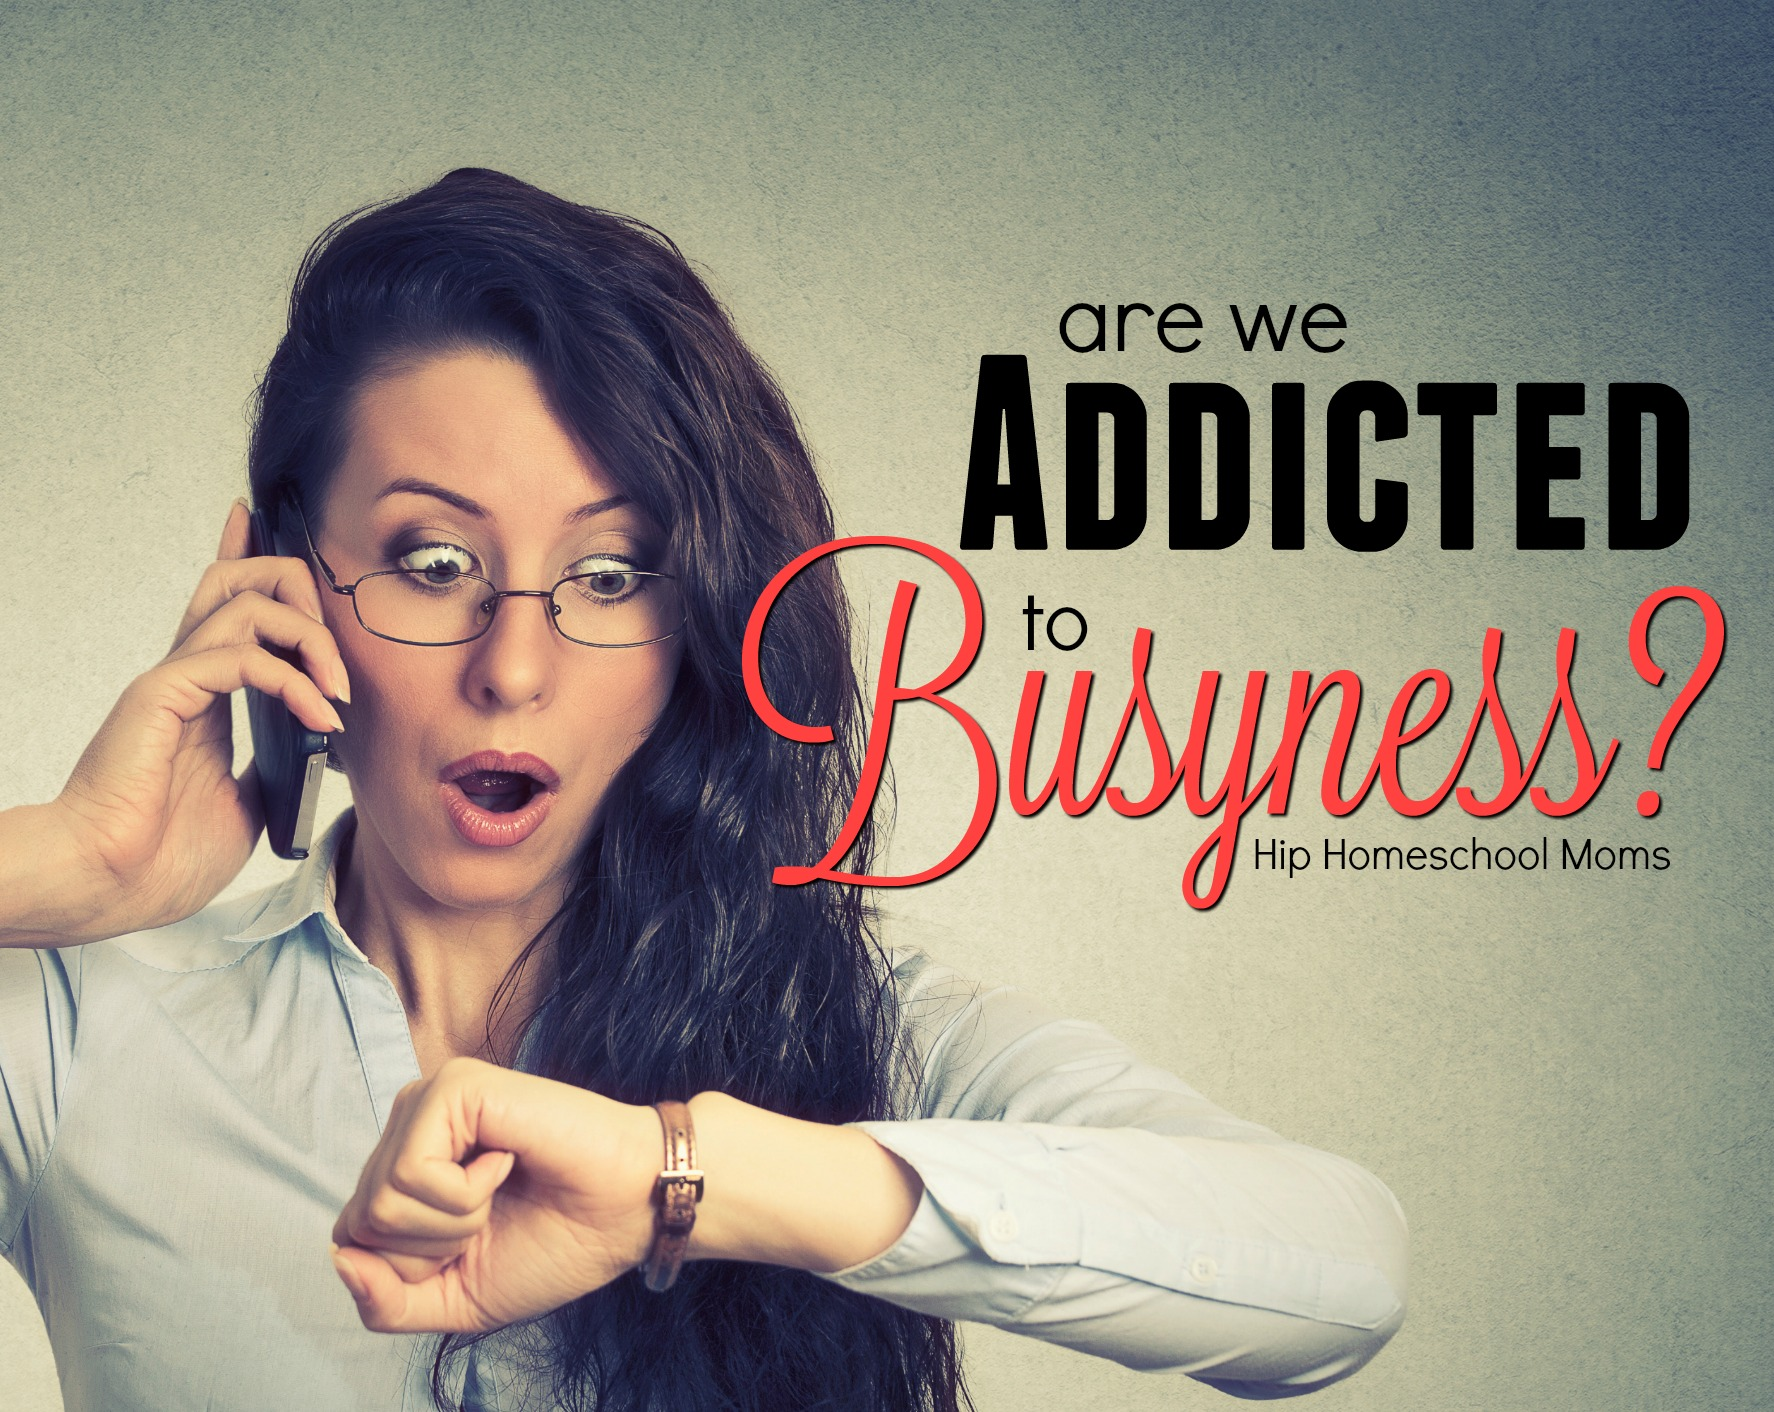 Are We Addicted to Busyness?